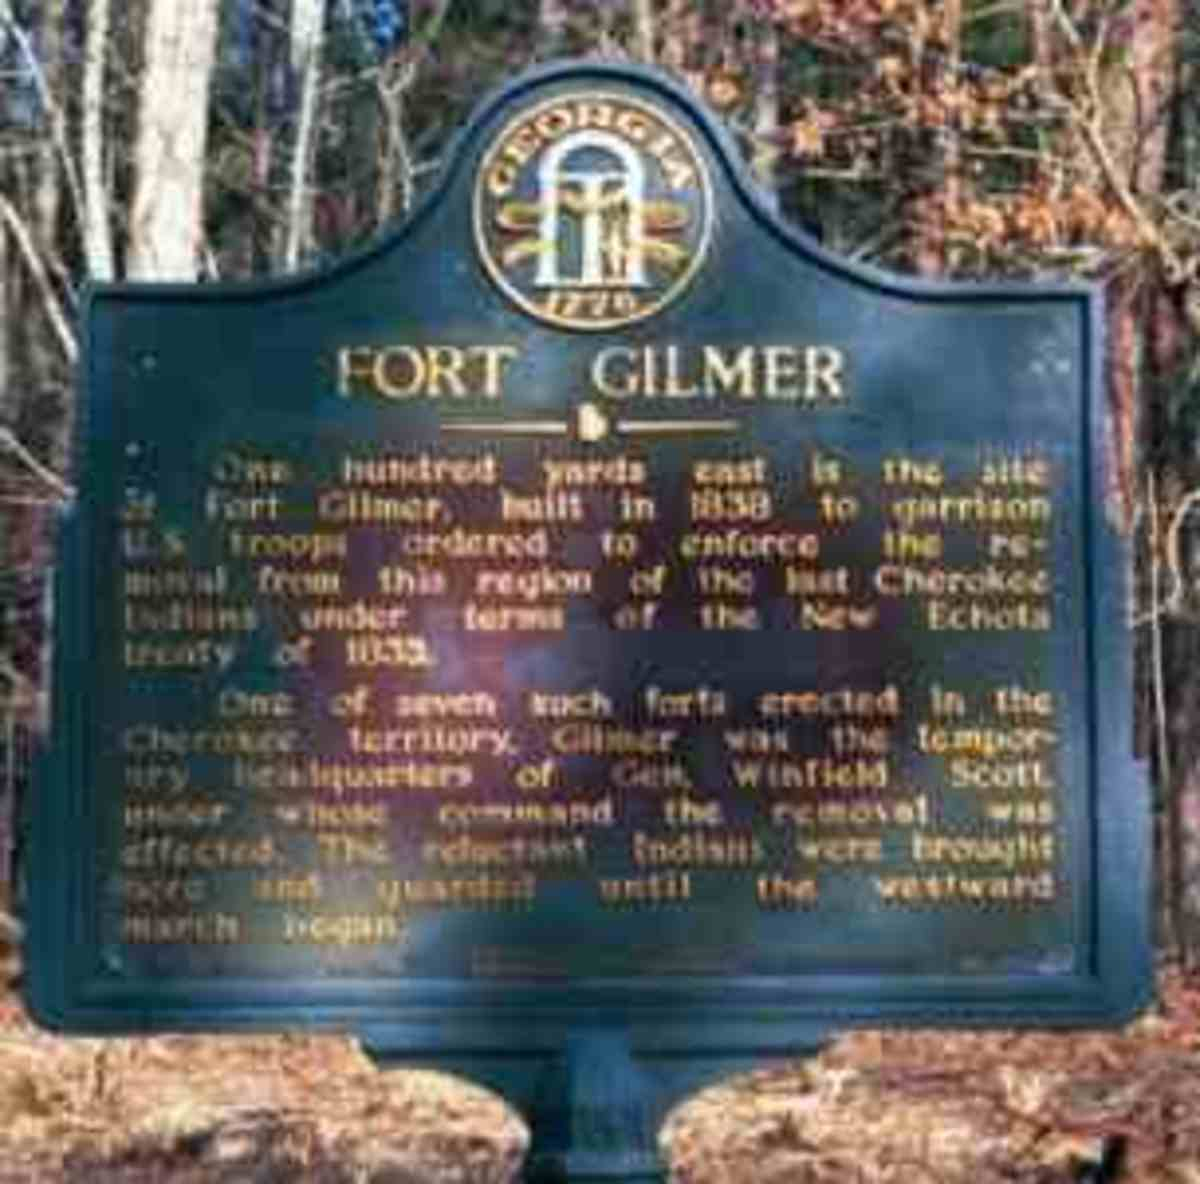 One hundred yards east is the site of Fort Gilmer, built in 1838 to garrison U.S. troops ordered to enforce the removal from this region of the last Cherokee Indians under terms of the New Echota treaty of 1835.